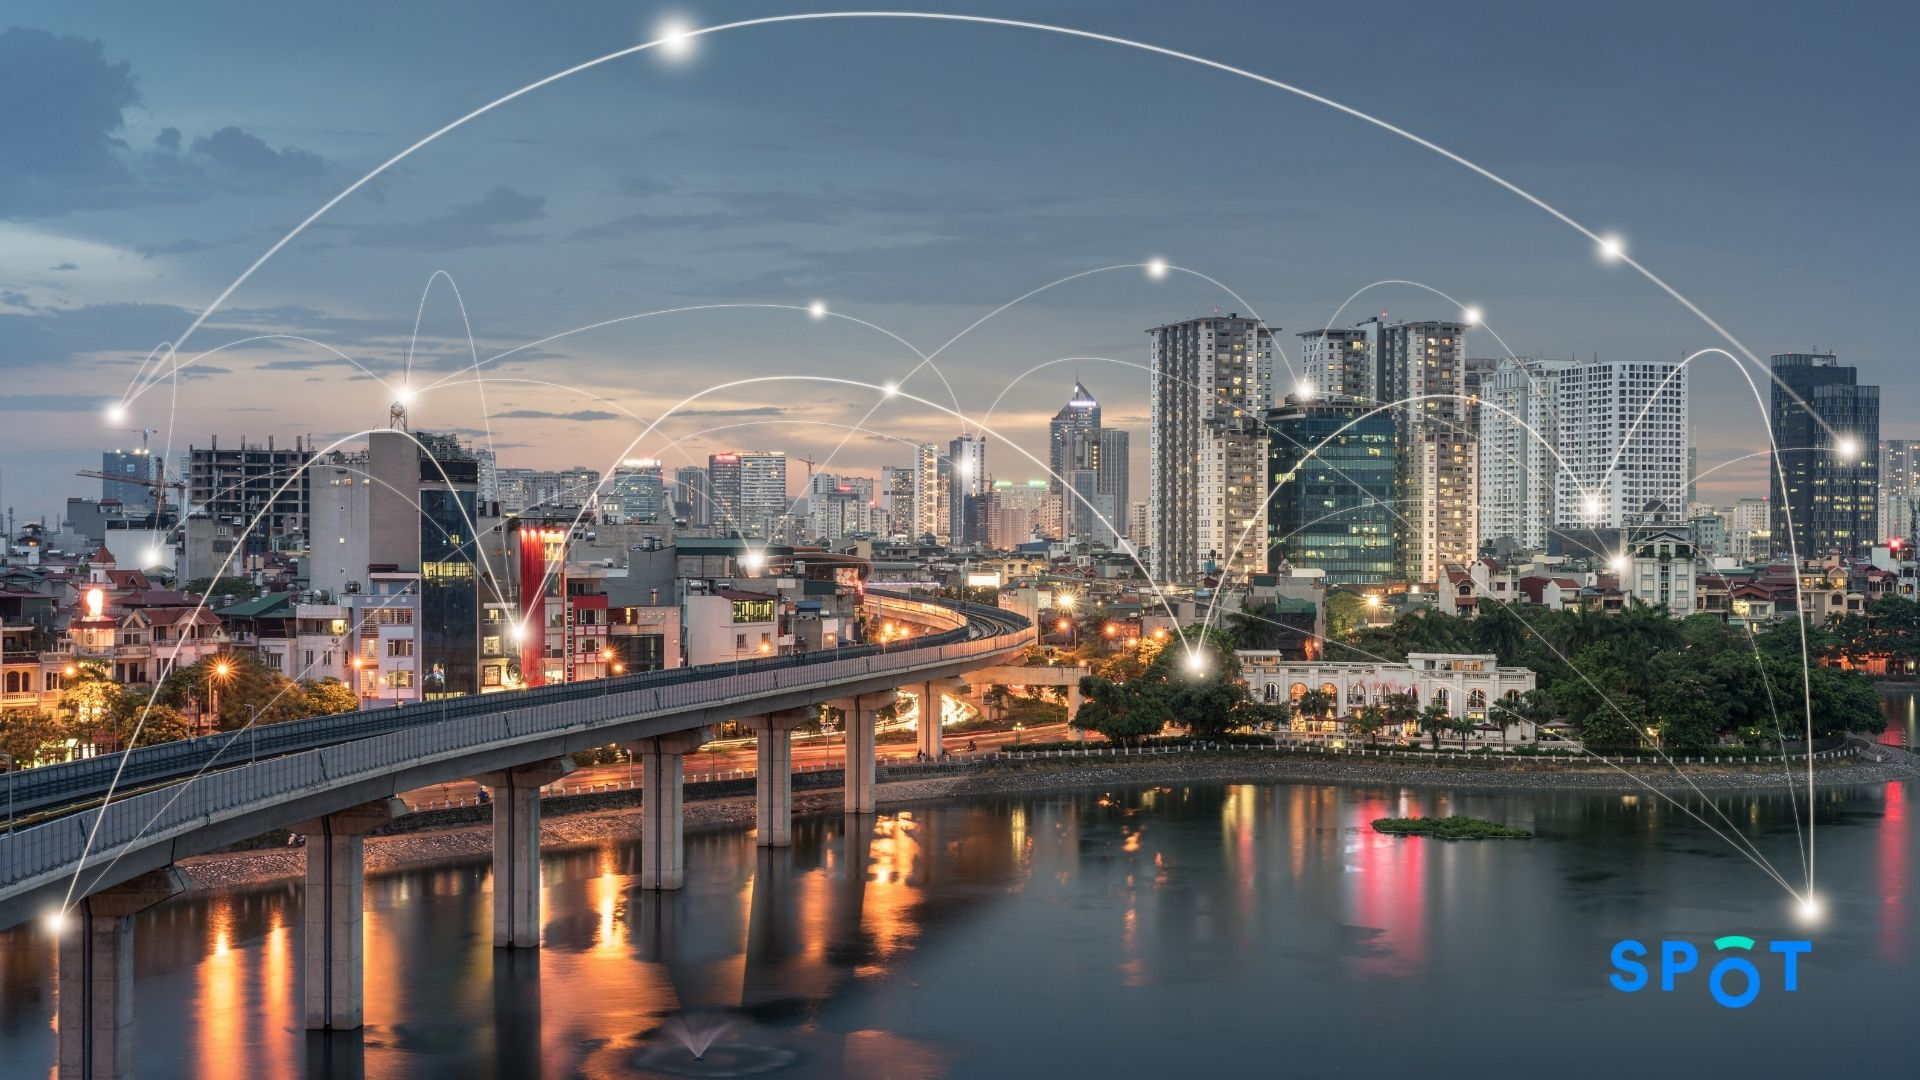 A smart city model empowered by the smart usage of kerb data